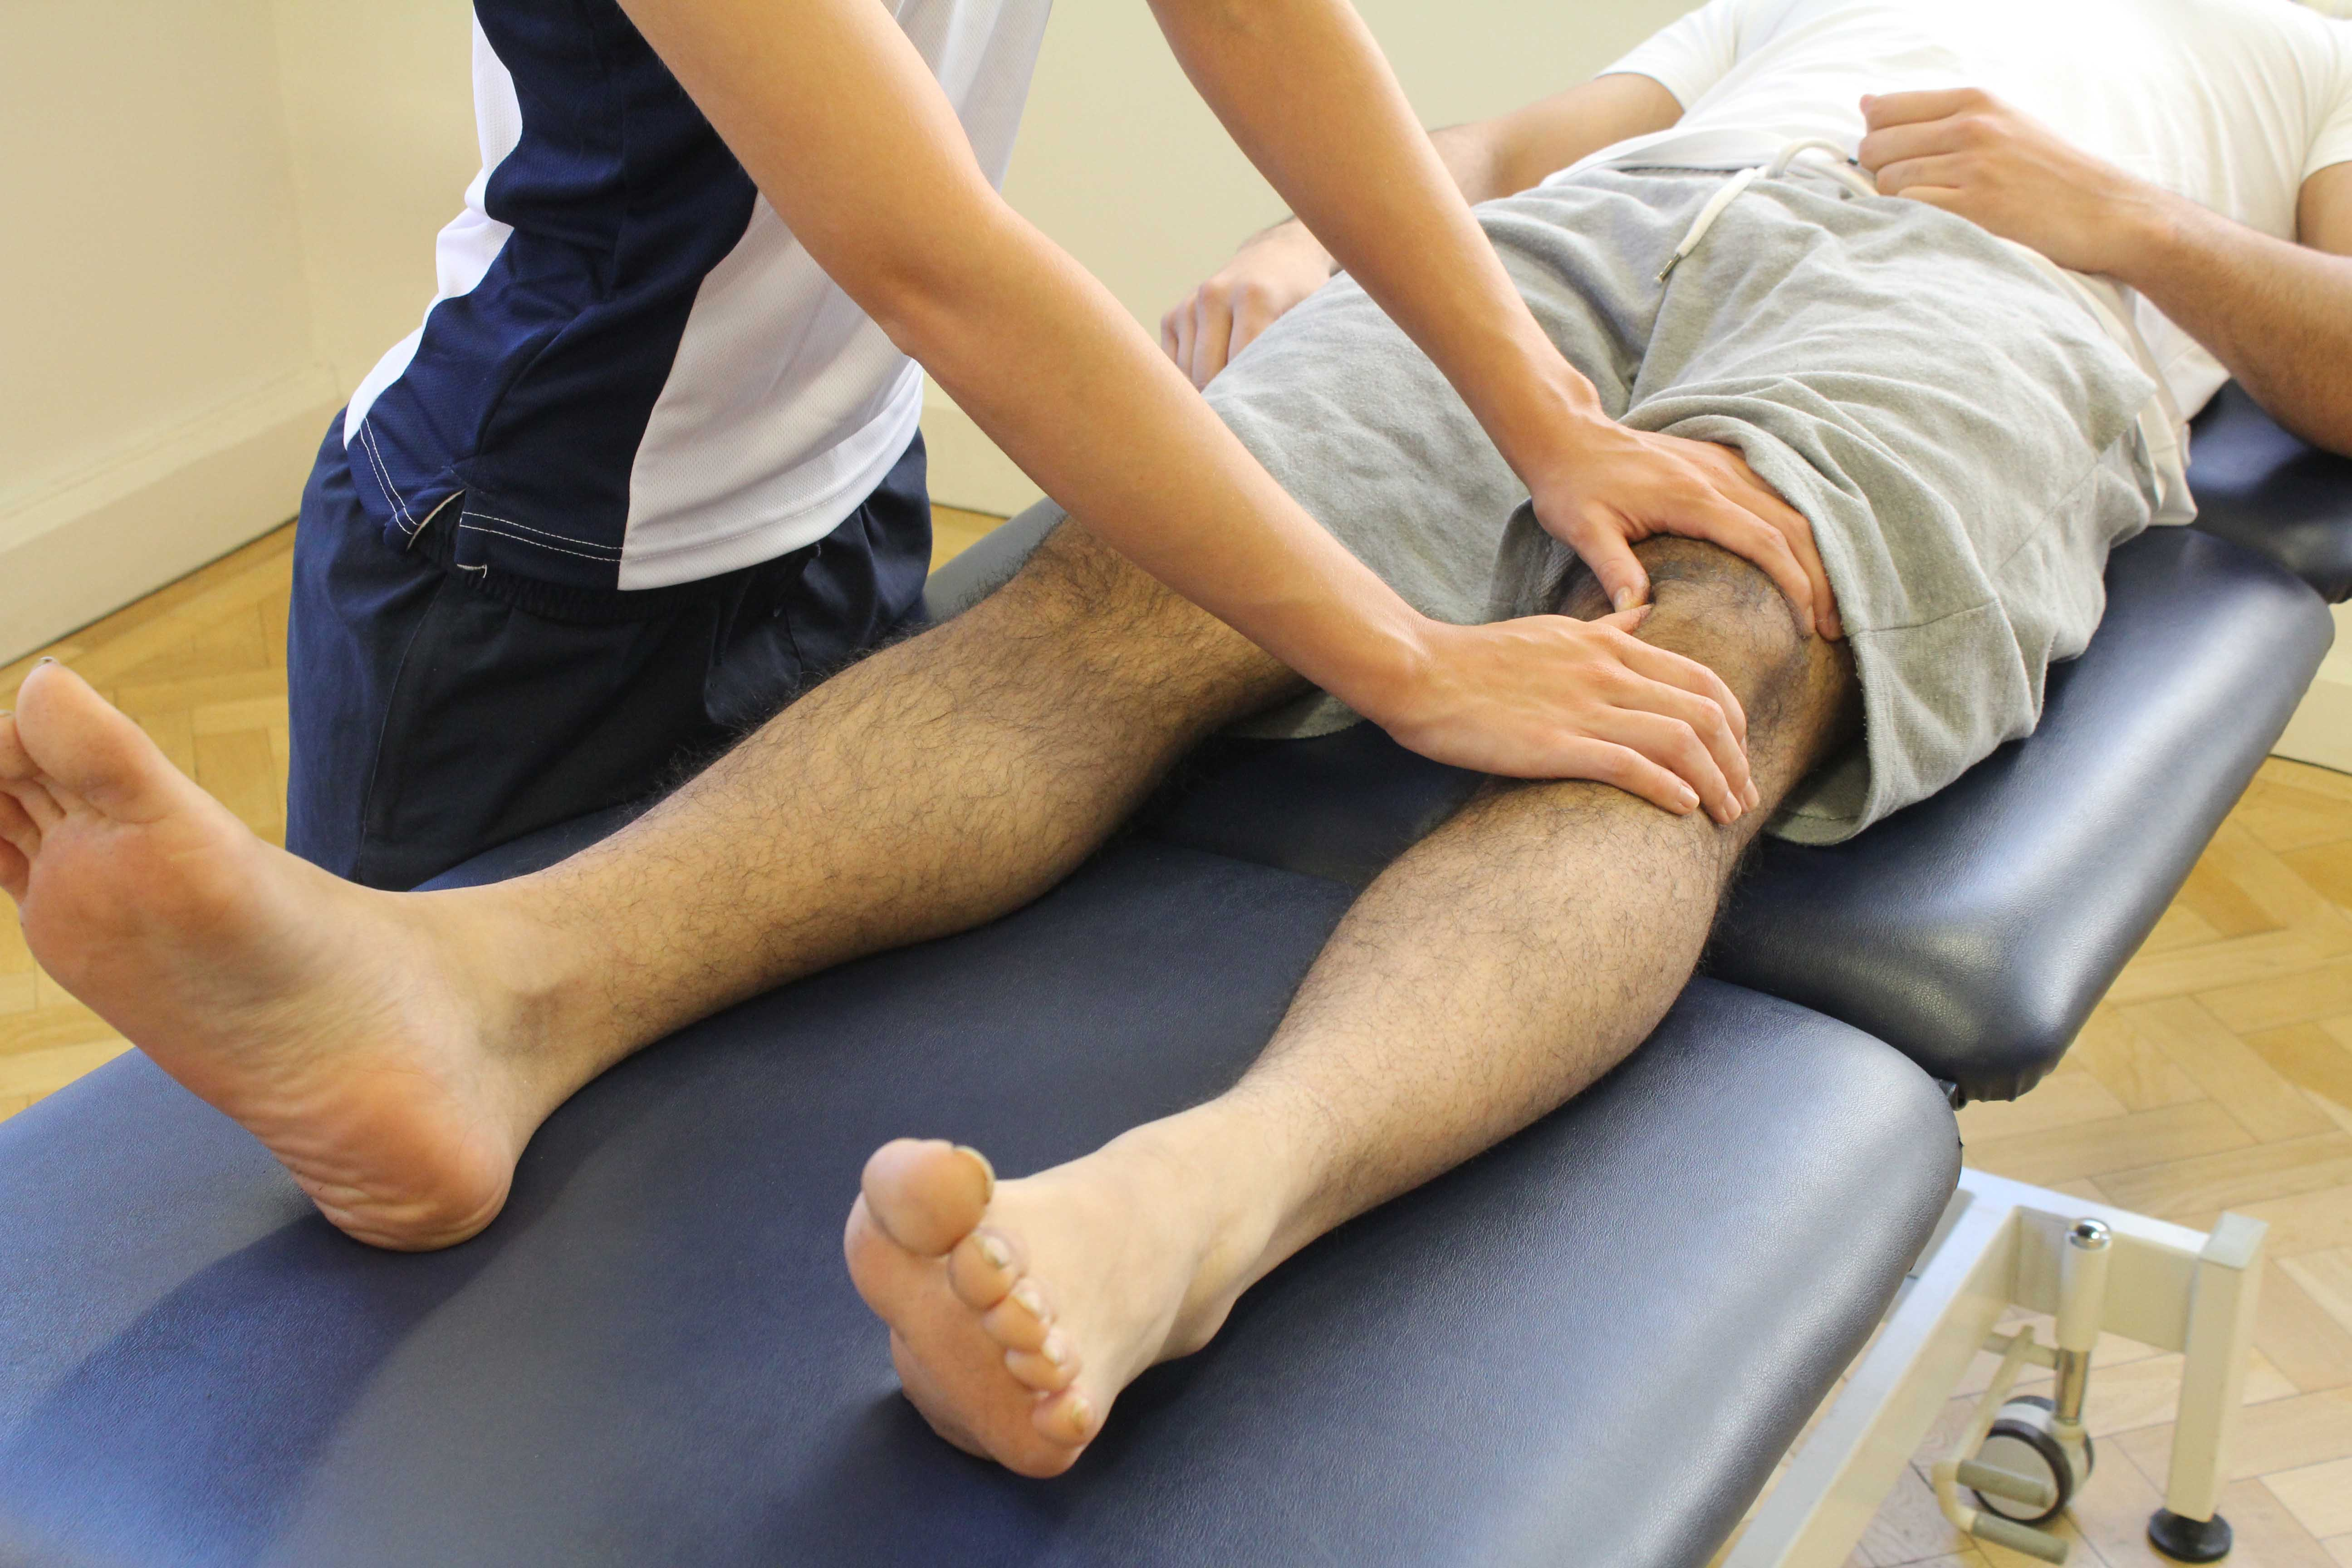 Soft tissue massage and mobilisations of the patella to disperse swelling from the knee joint